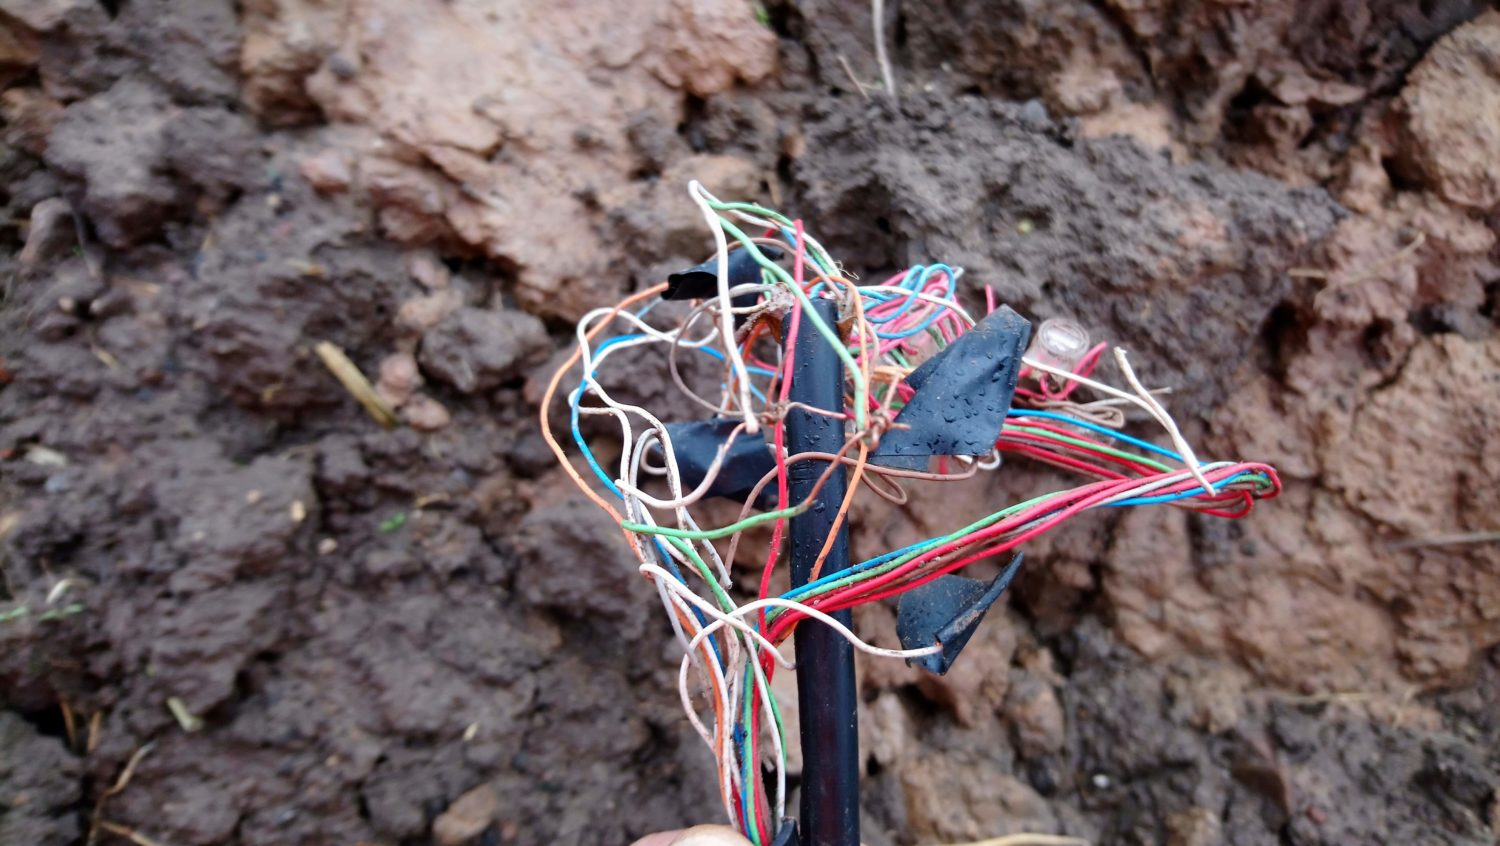 How to Fix Cut Underground Phone Line. An Engineer Shares Advice.